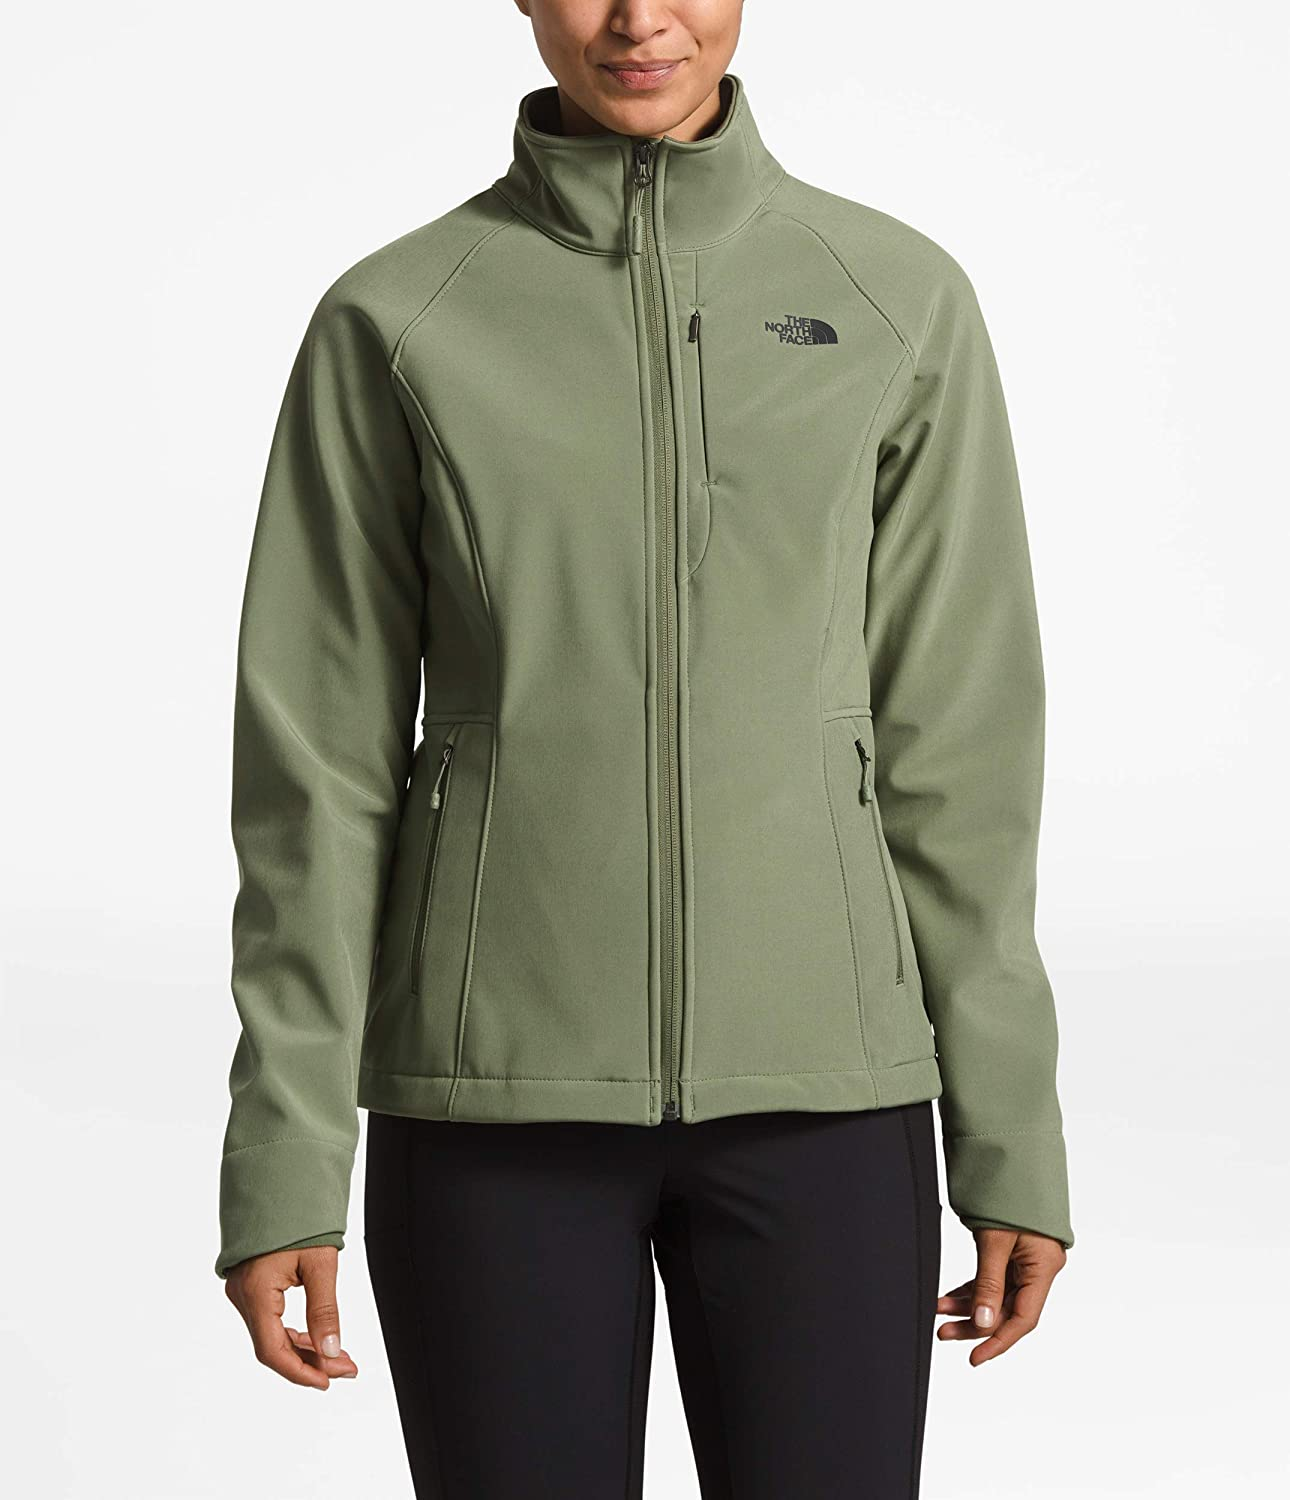 7a594b3cd The North Face Women's Apex Bionic 2 Soft Shell Jacket